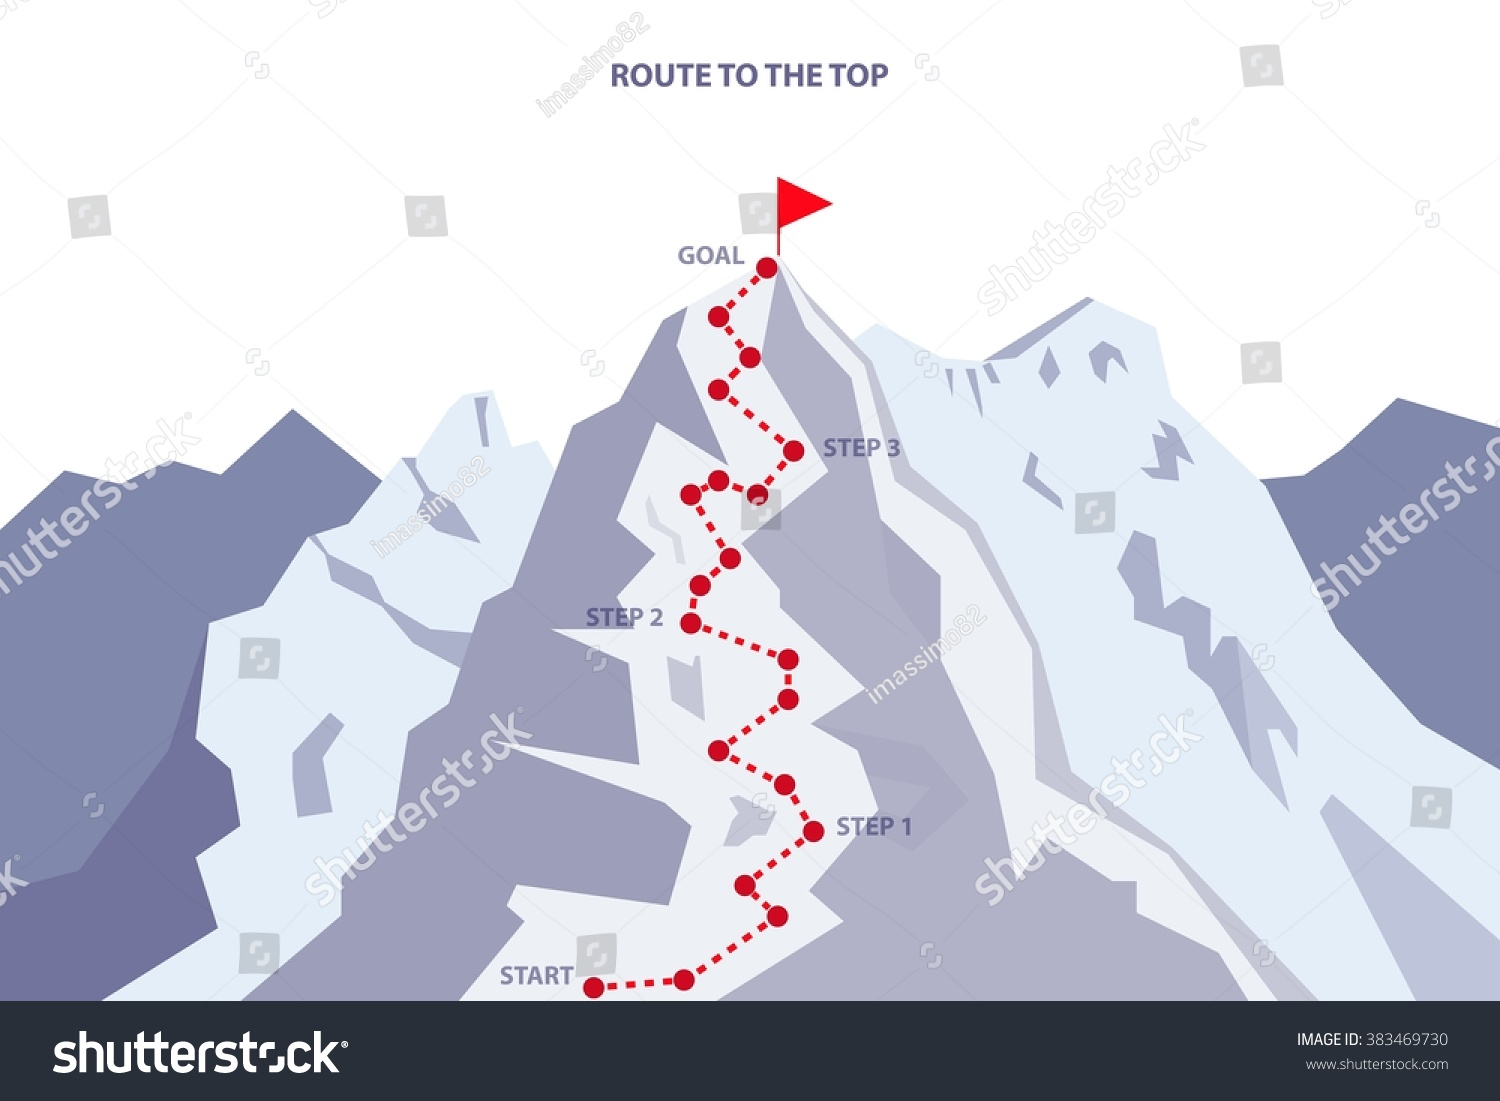 route top career growth goal achieving stock vector  route to the top career growth goal achieving concept vector infographic